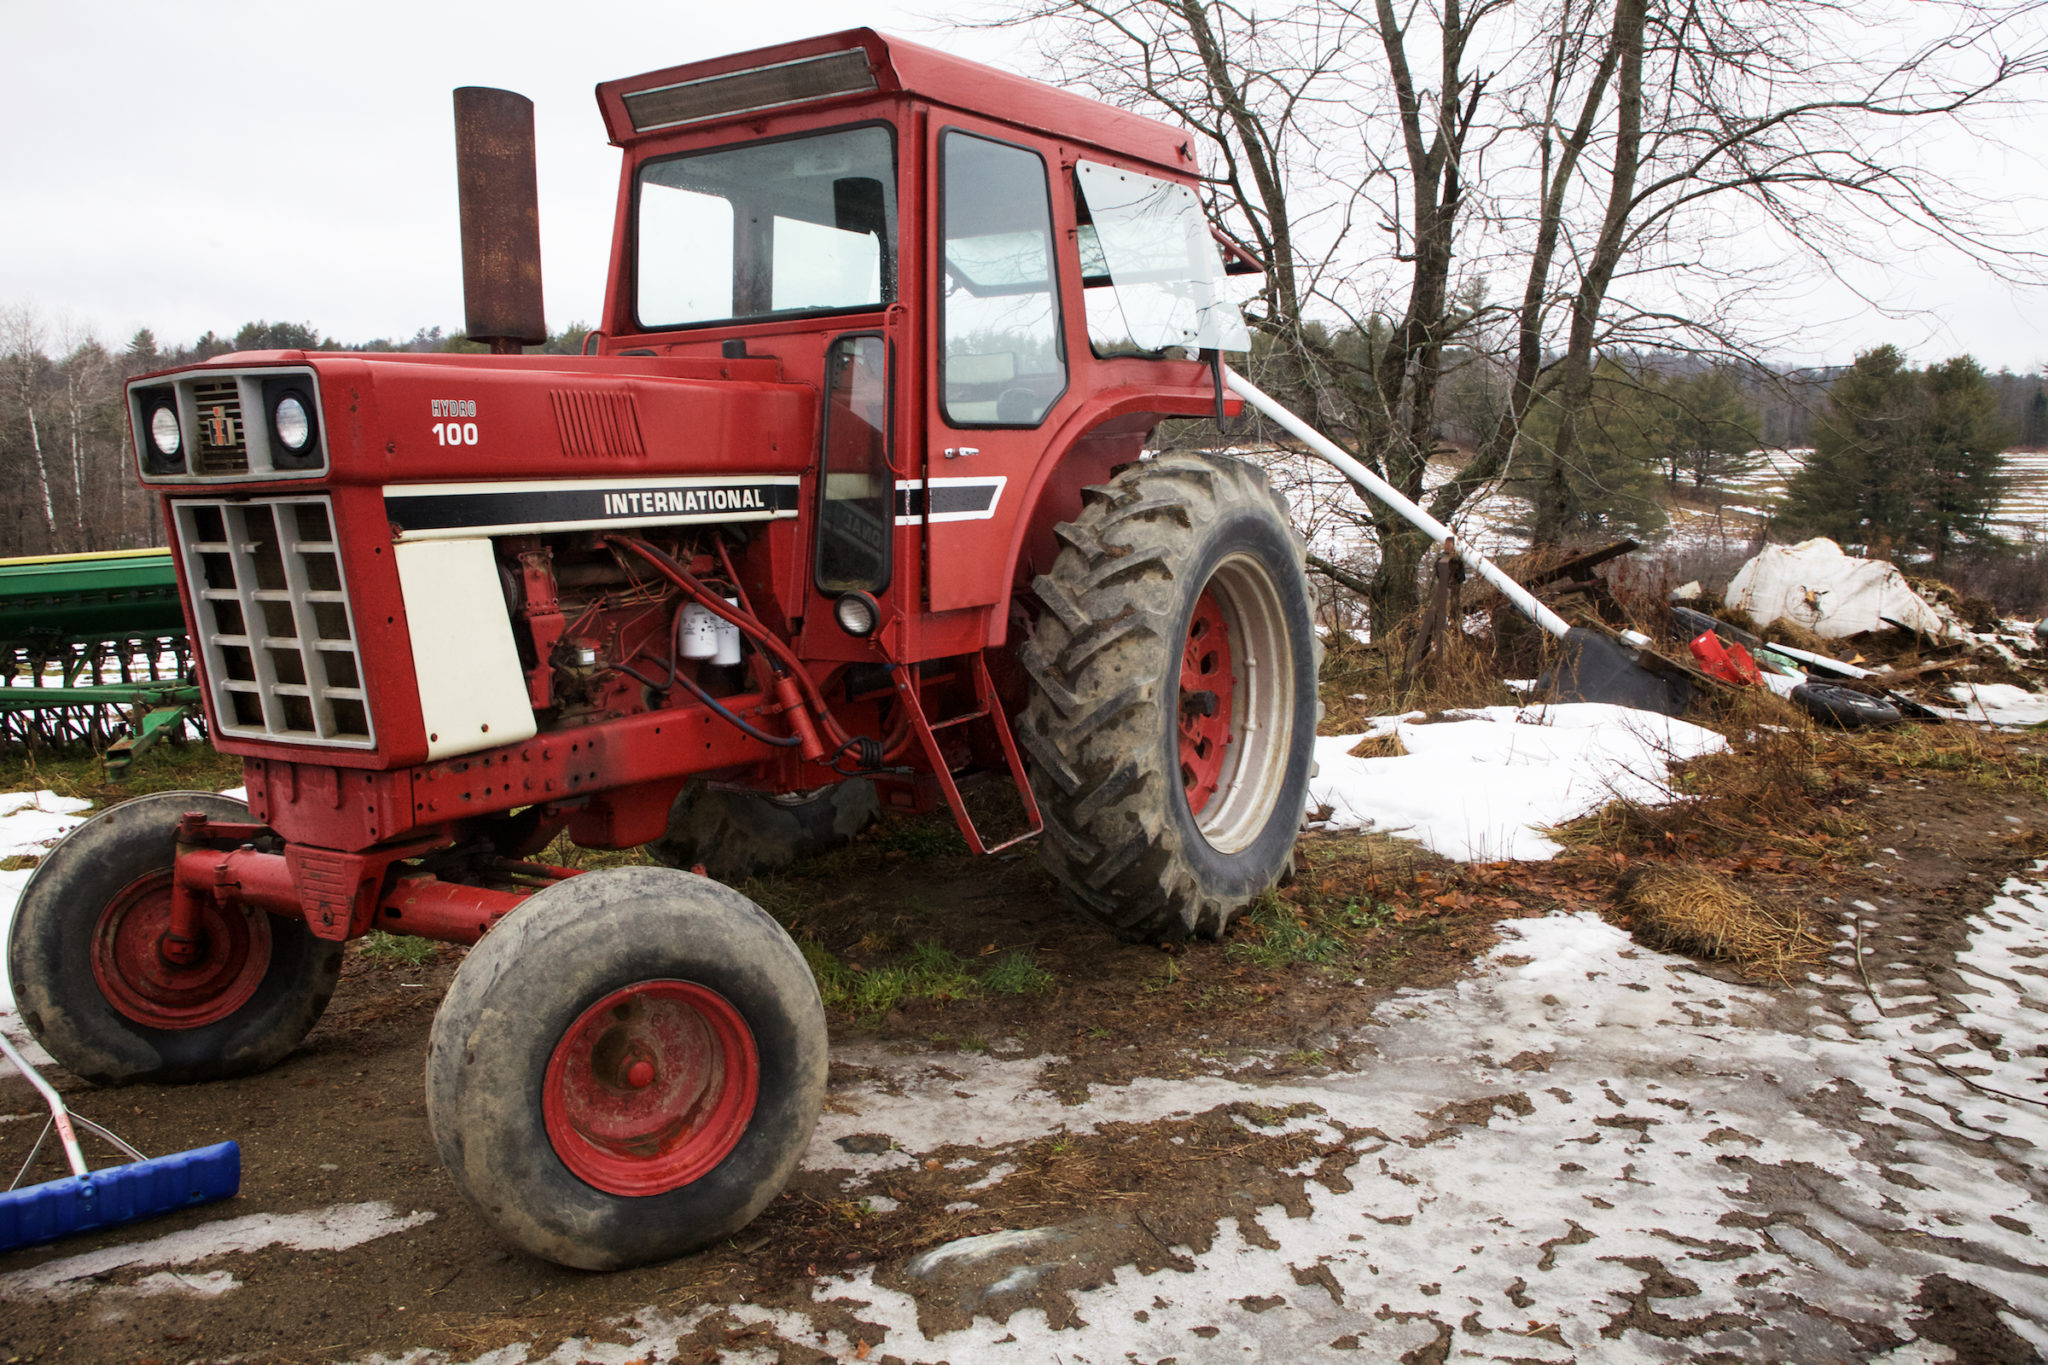 What to look for in a farm tractor